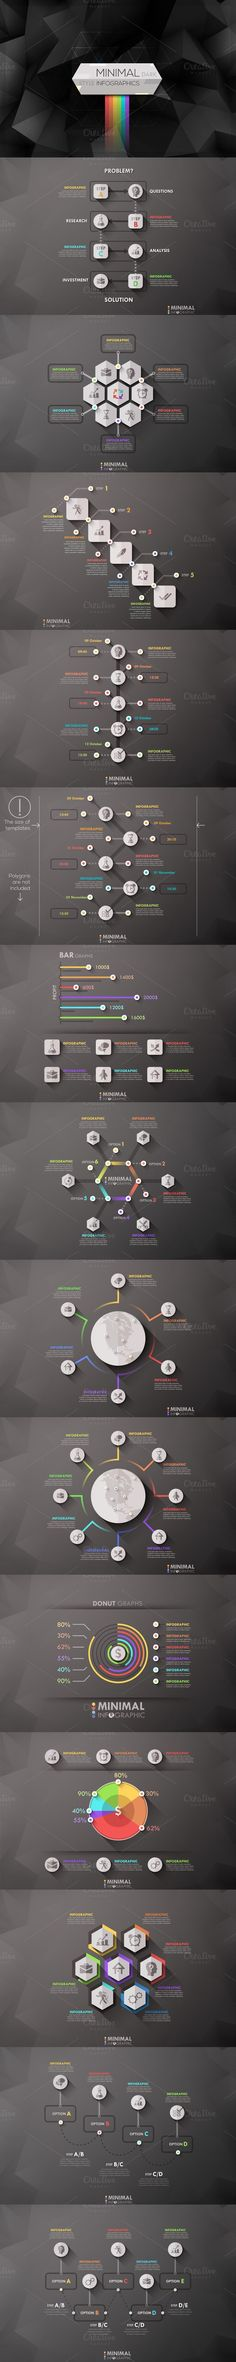 Collection Of Minimal Dark Infograph. Business Infographic. $18.00